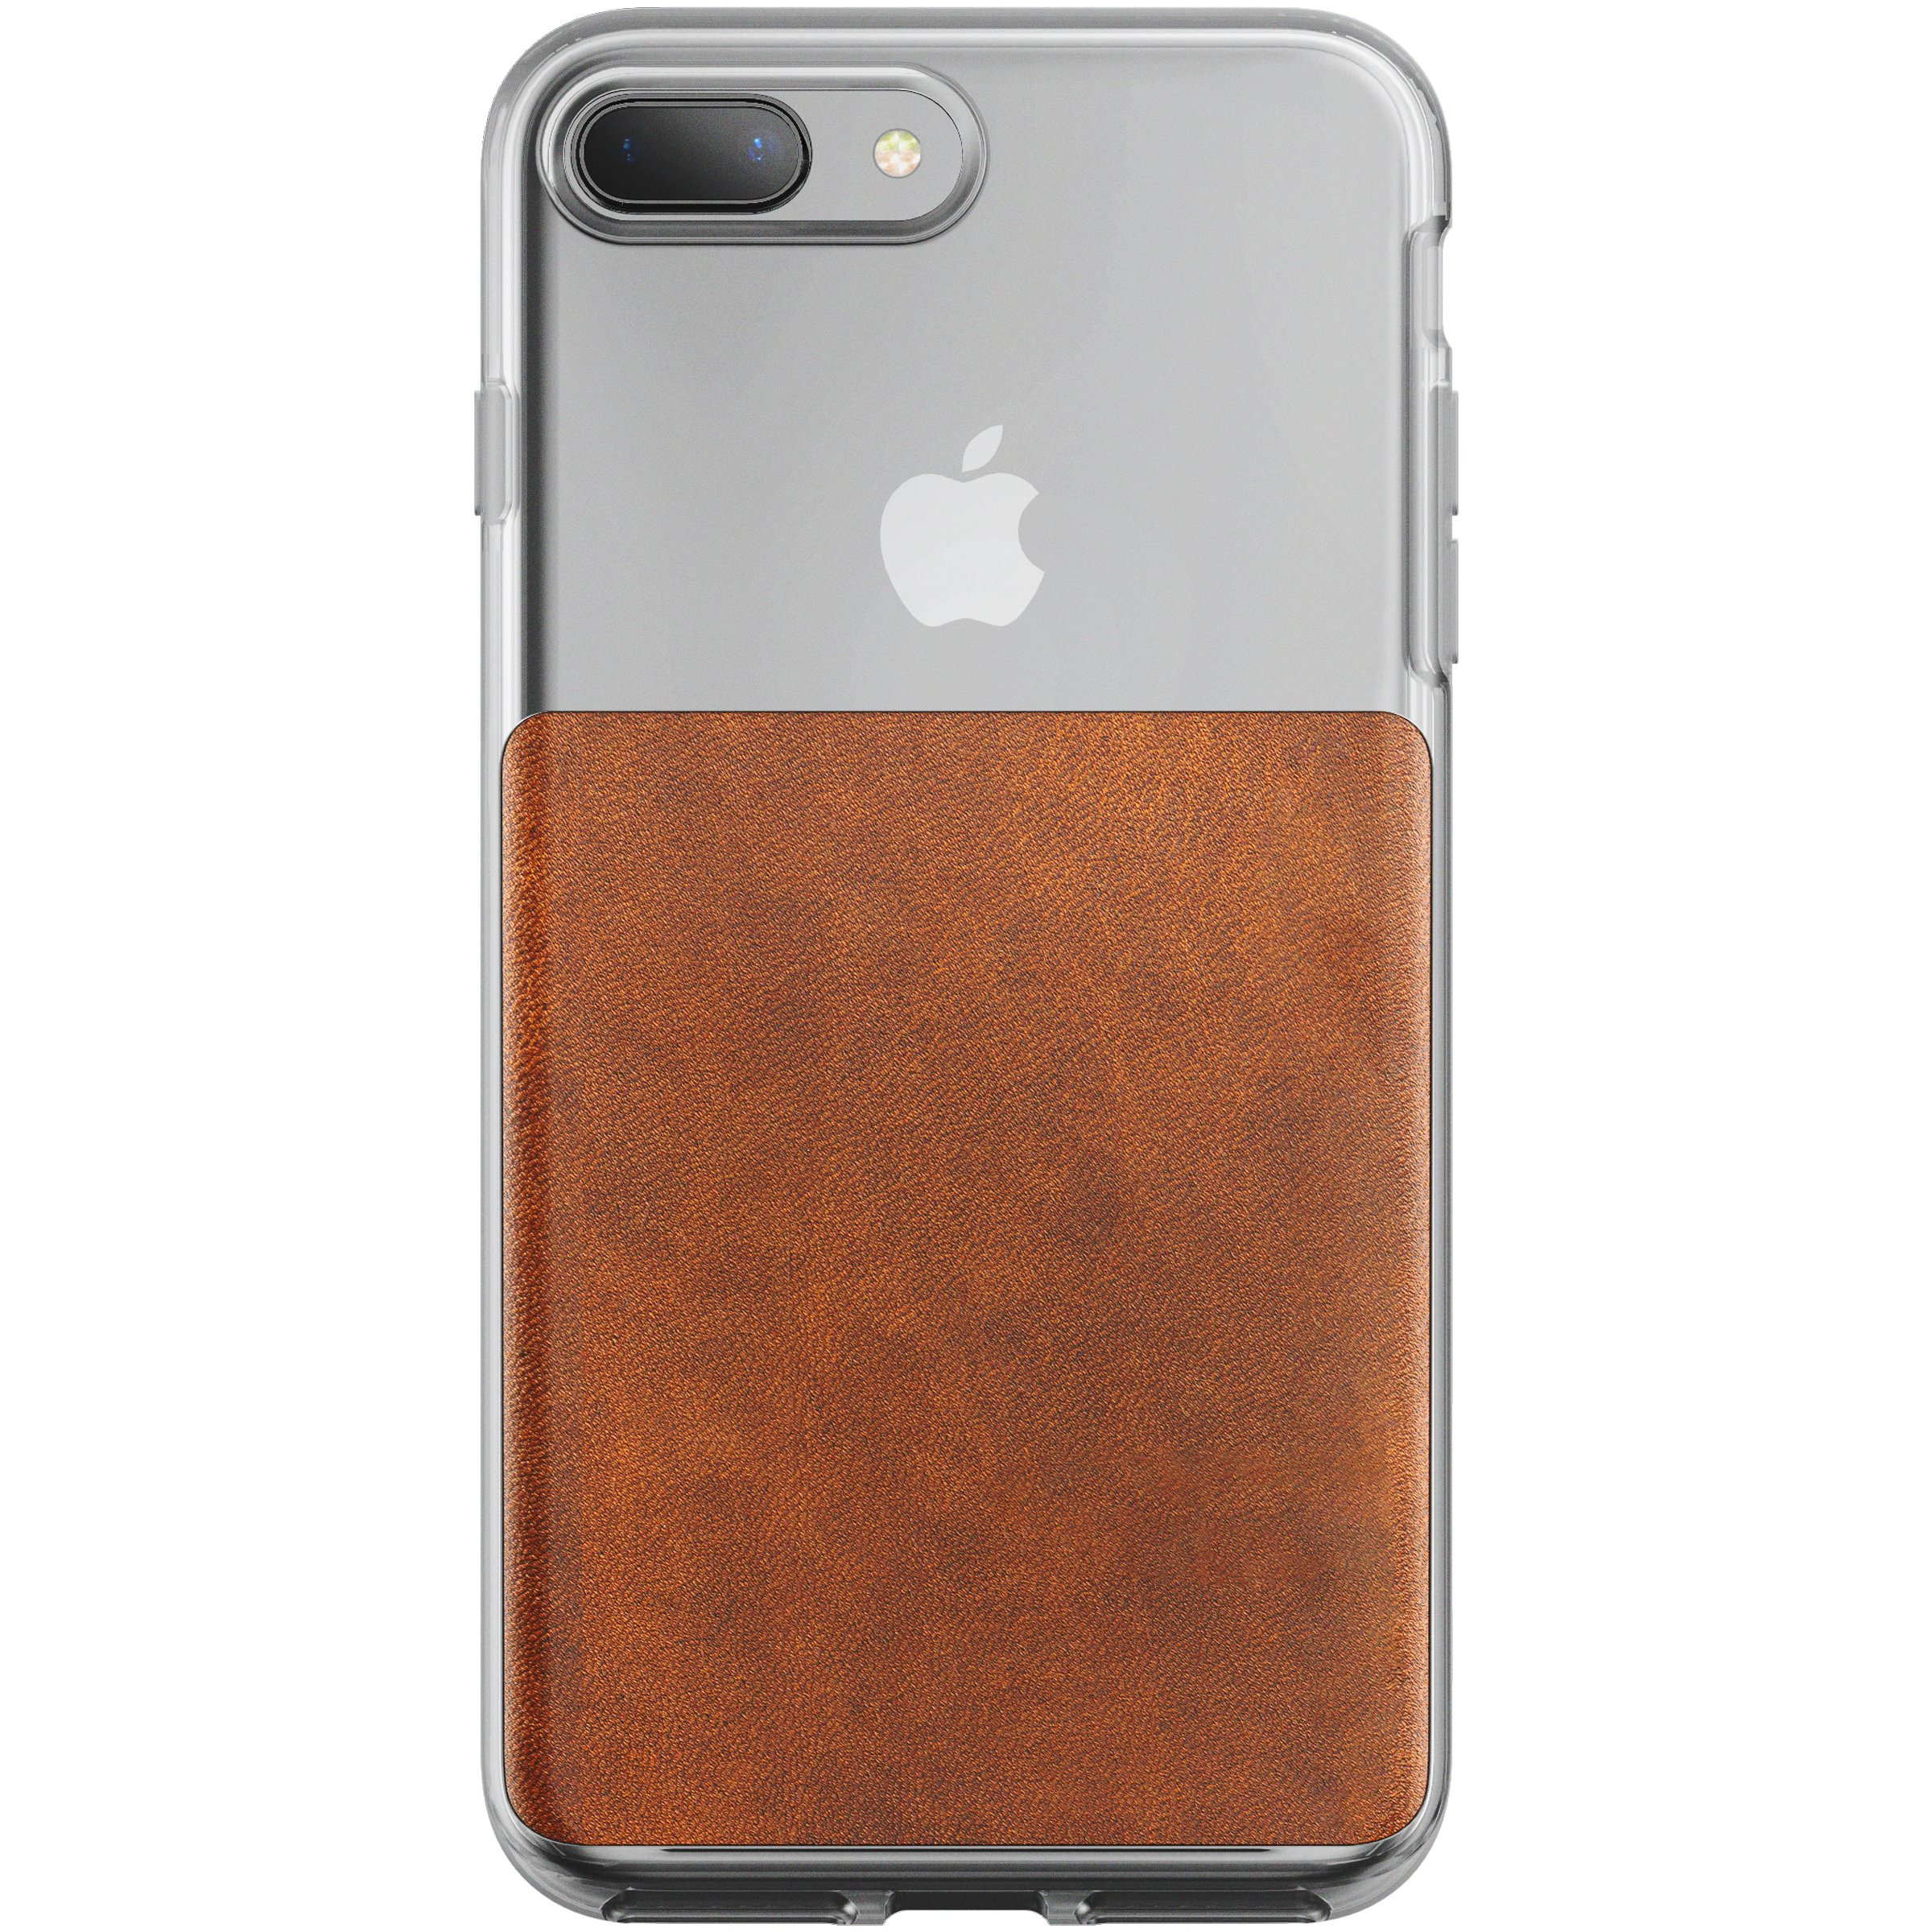 Nomad iPhone 7 Plus/8 Plus Clear Case w/ Rustic Brown Leather - Edge-to-Edge Protection - Wireless Charging Compatible